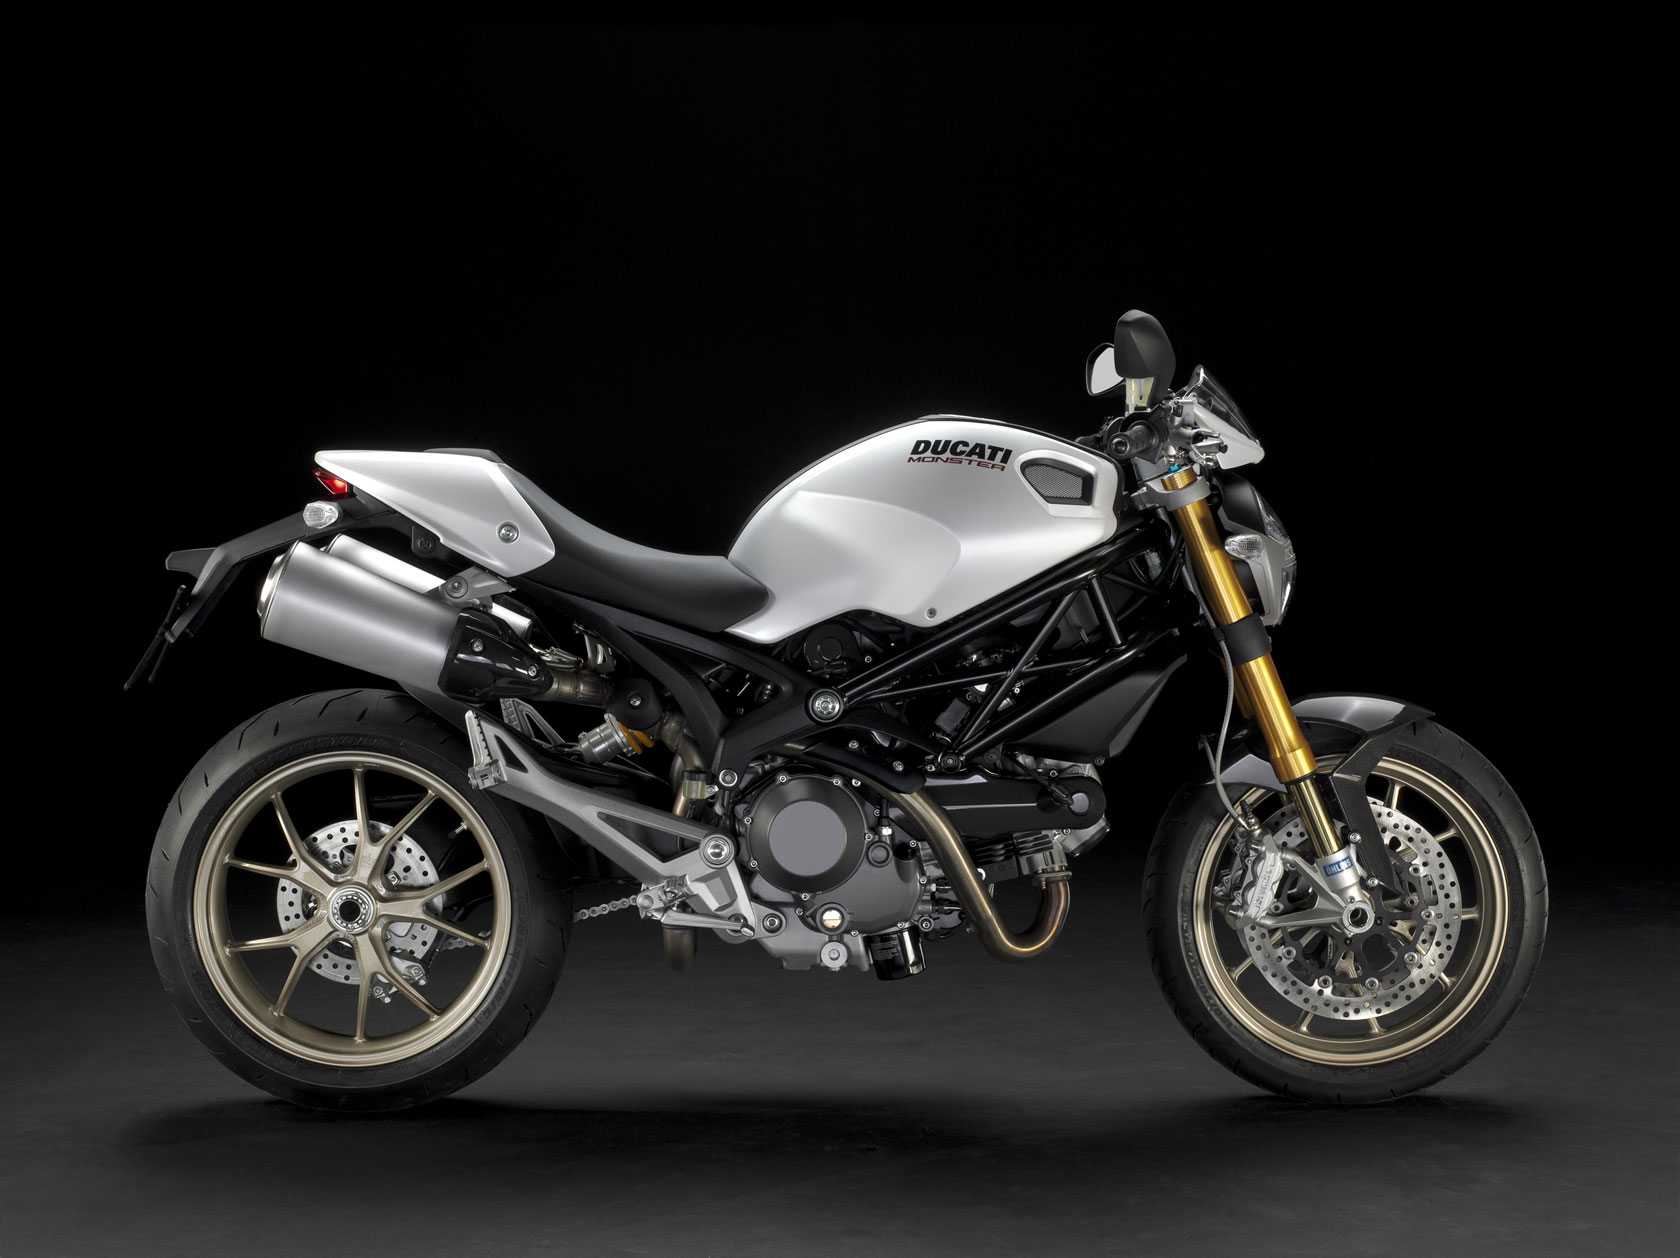 2009 Ducati Monster 1100S Side View